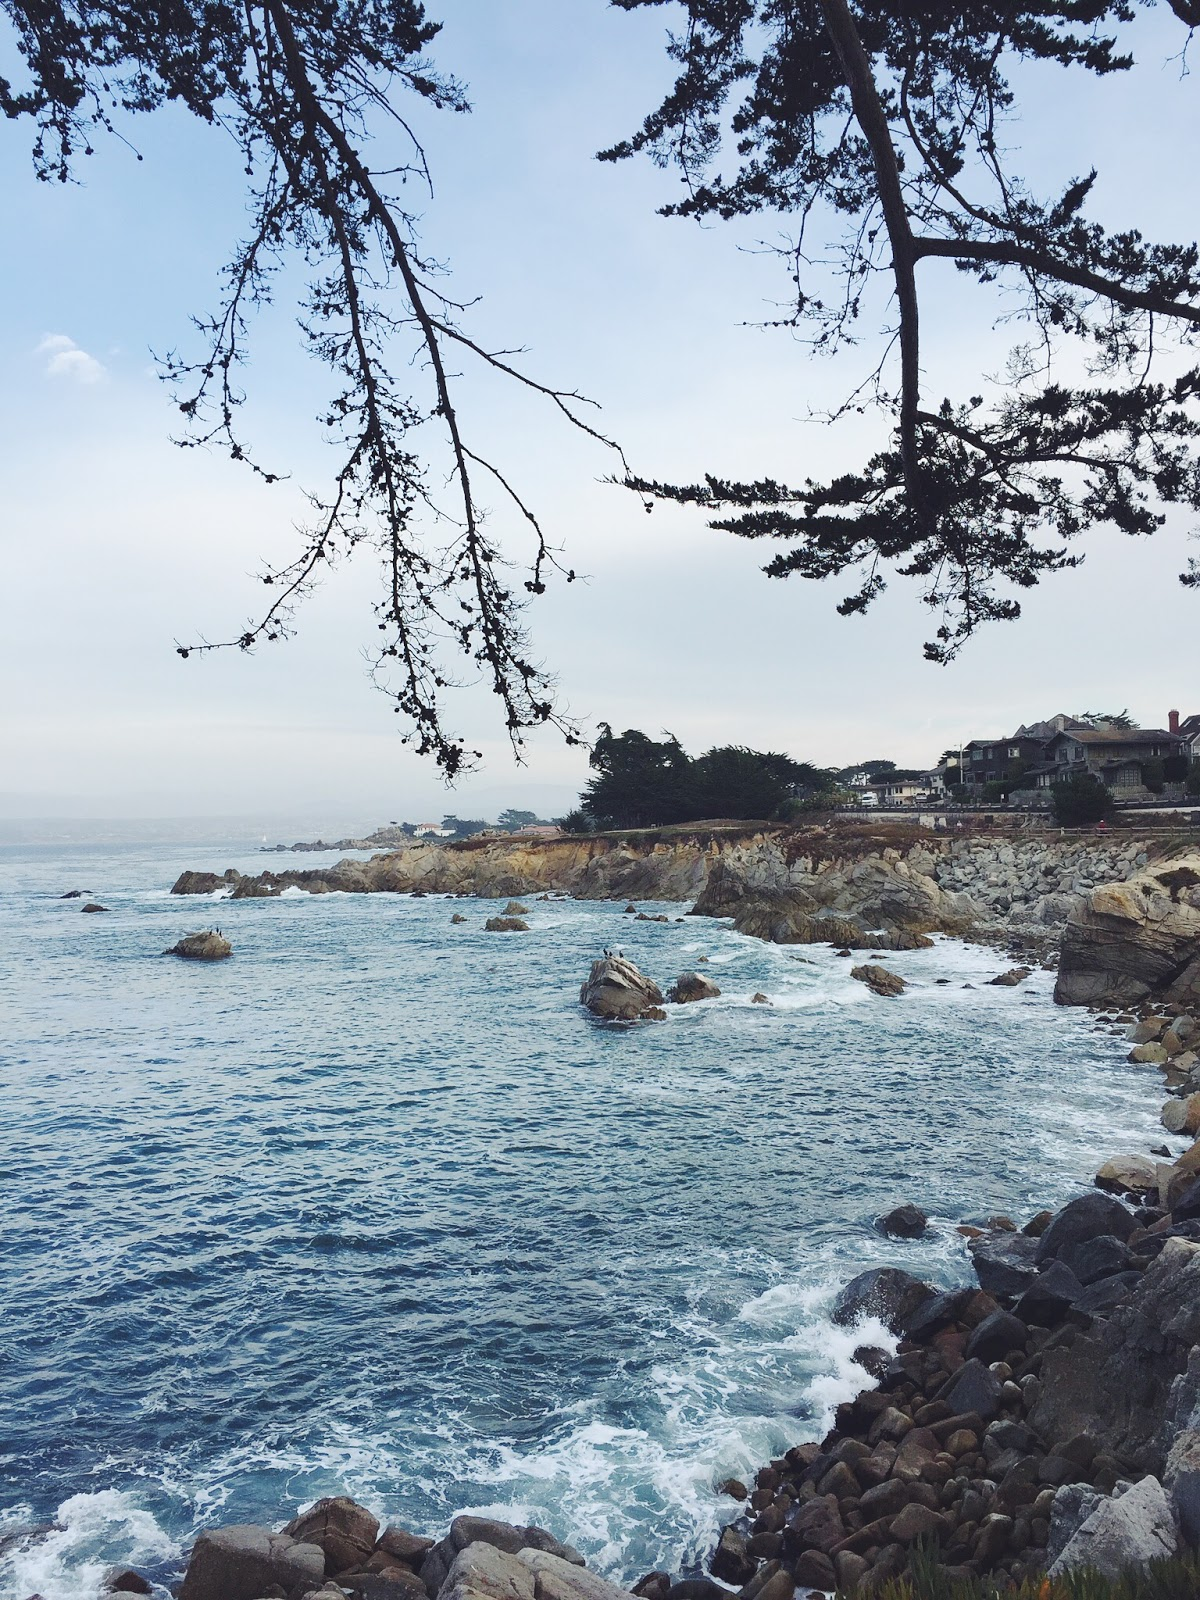 Lovers point Monterey, Monterey scenic outlook